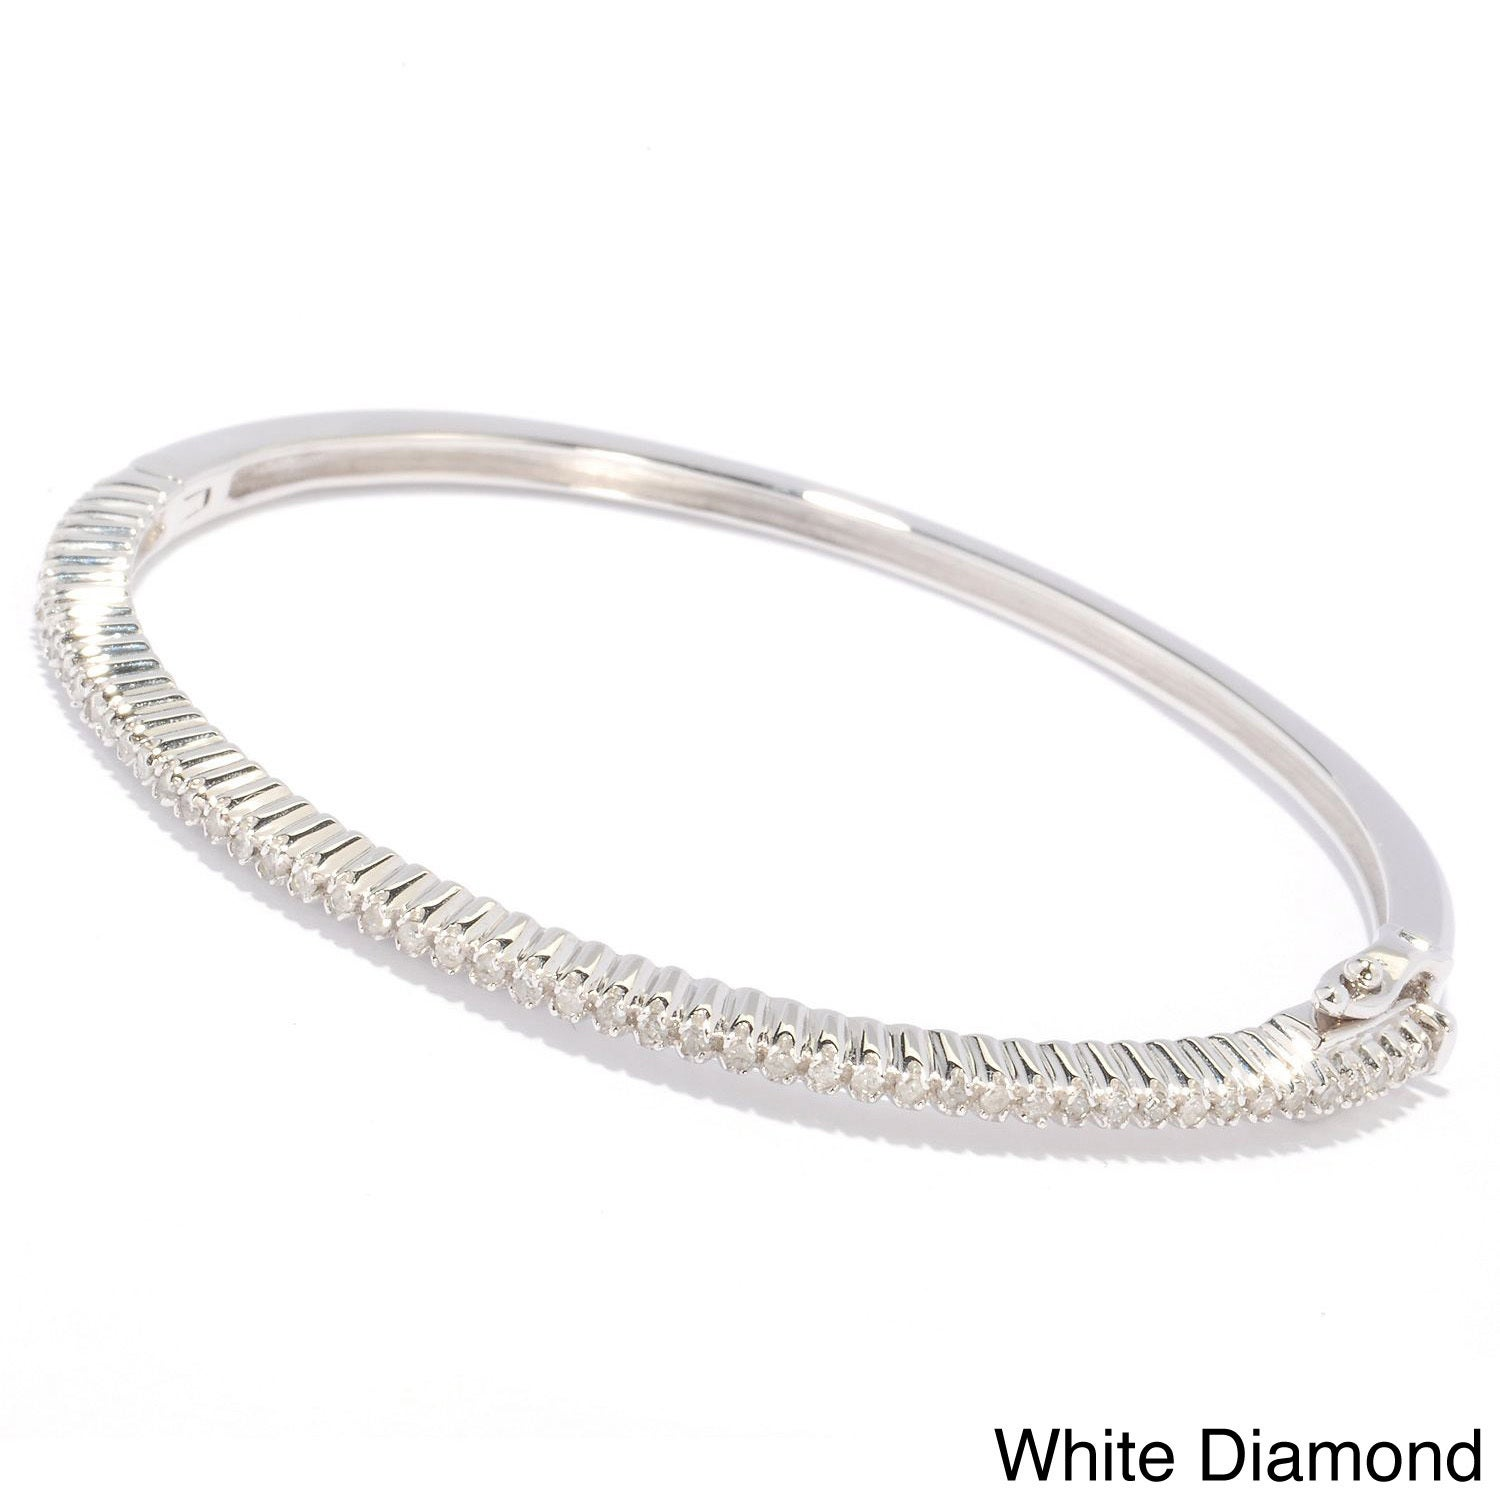 blue i ags bangles certified h in diamond ct white bracelets sterling bangle gold collections silver bracelet products